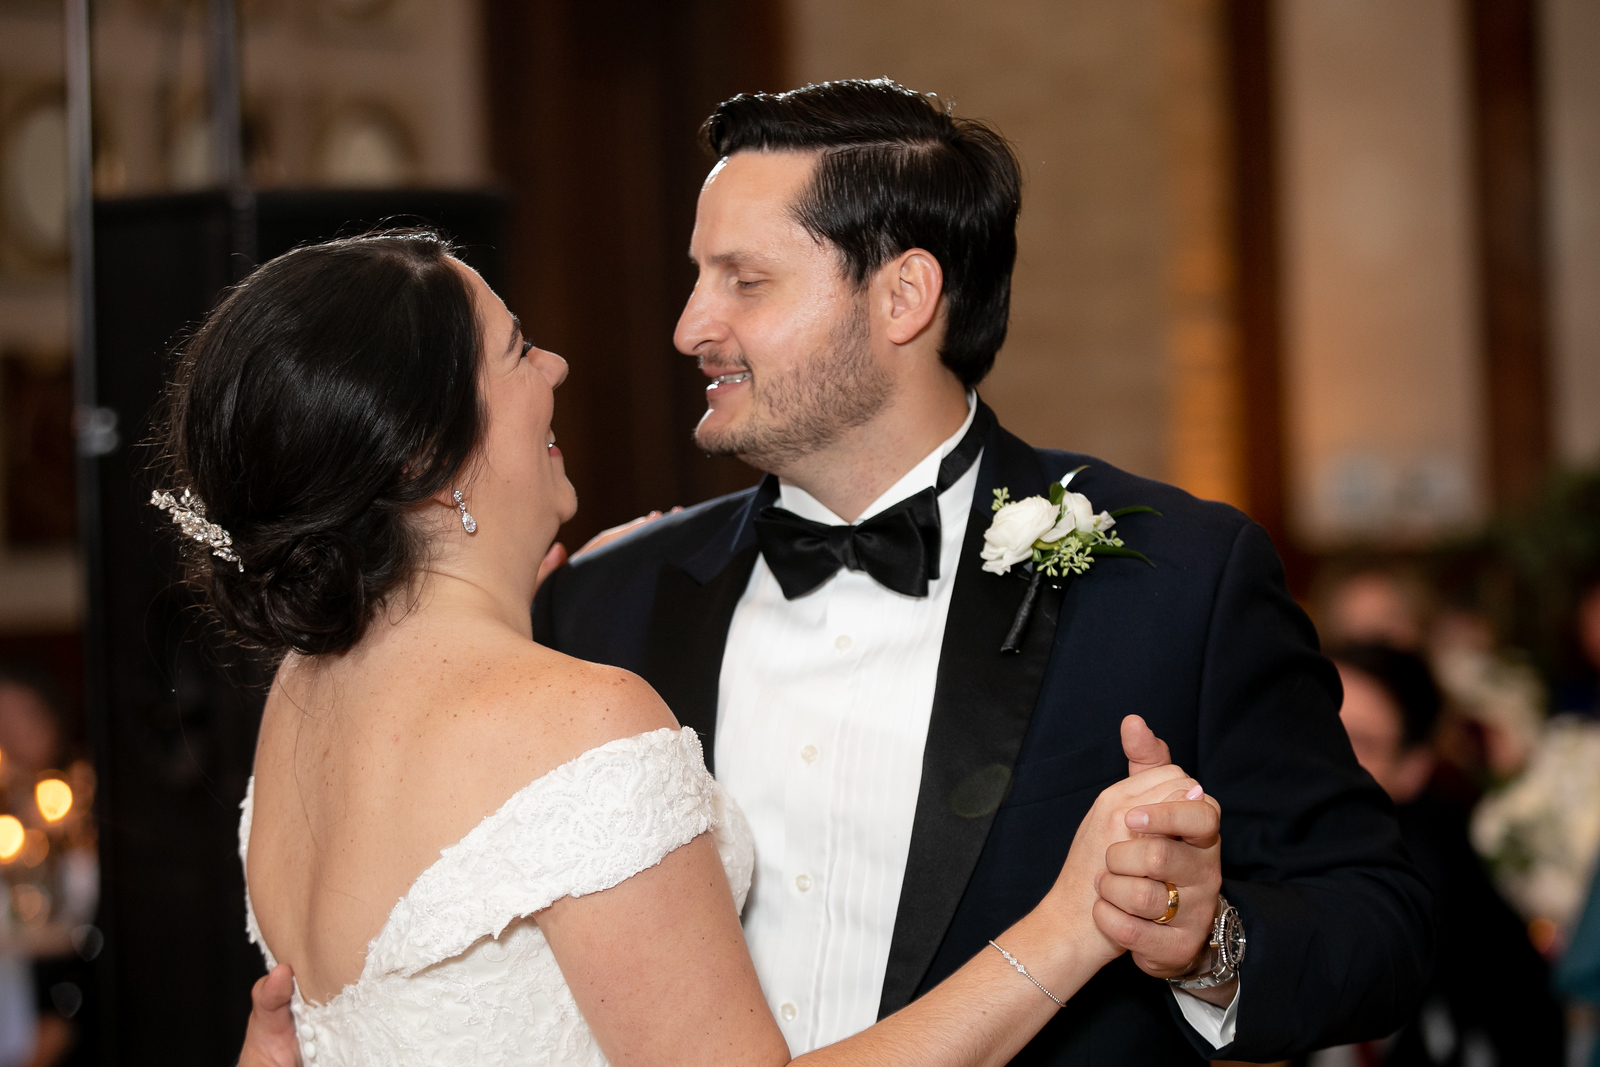 groom smiling at his new bride as she laughs while they dance at their wedding reception